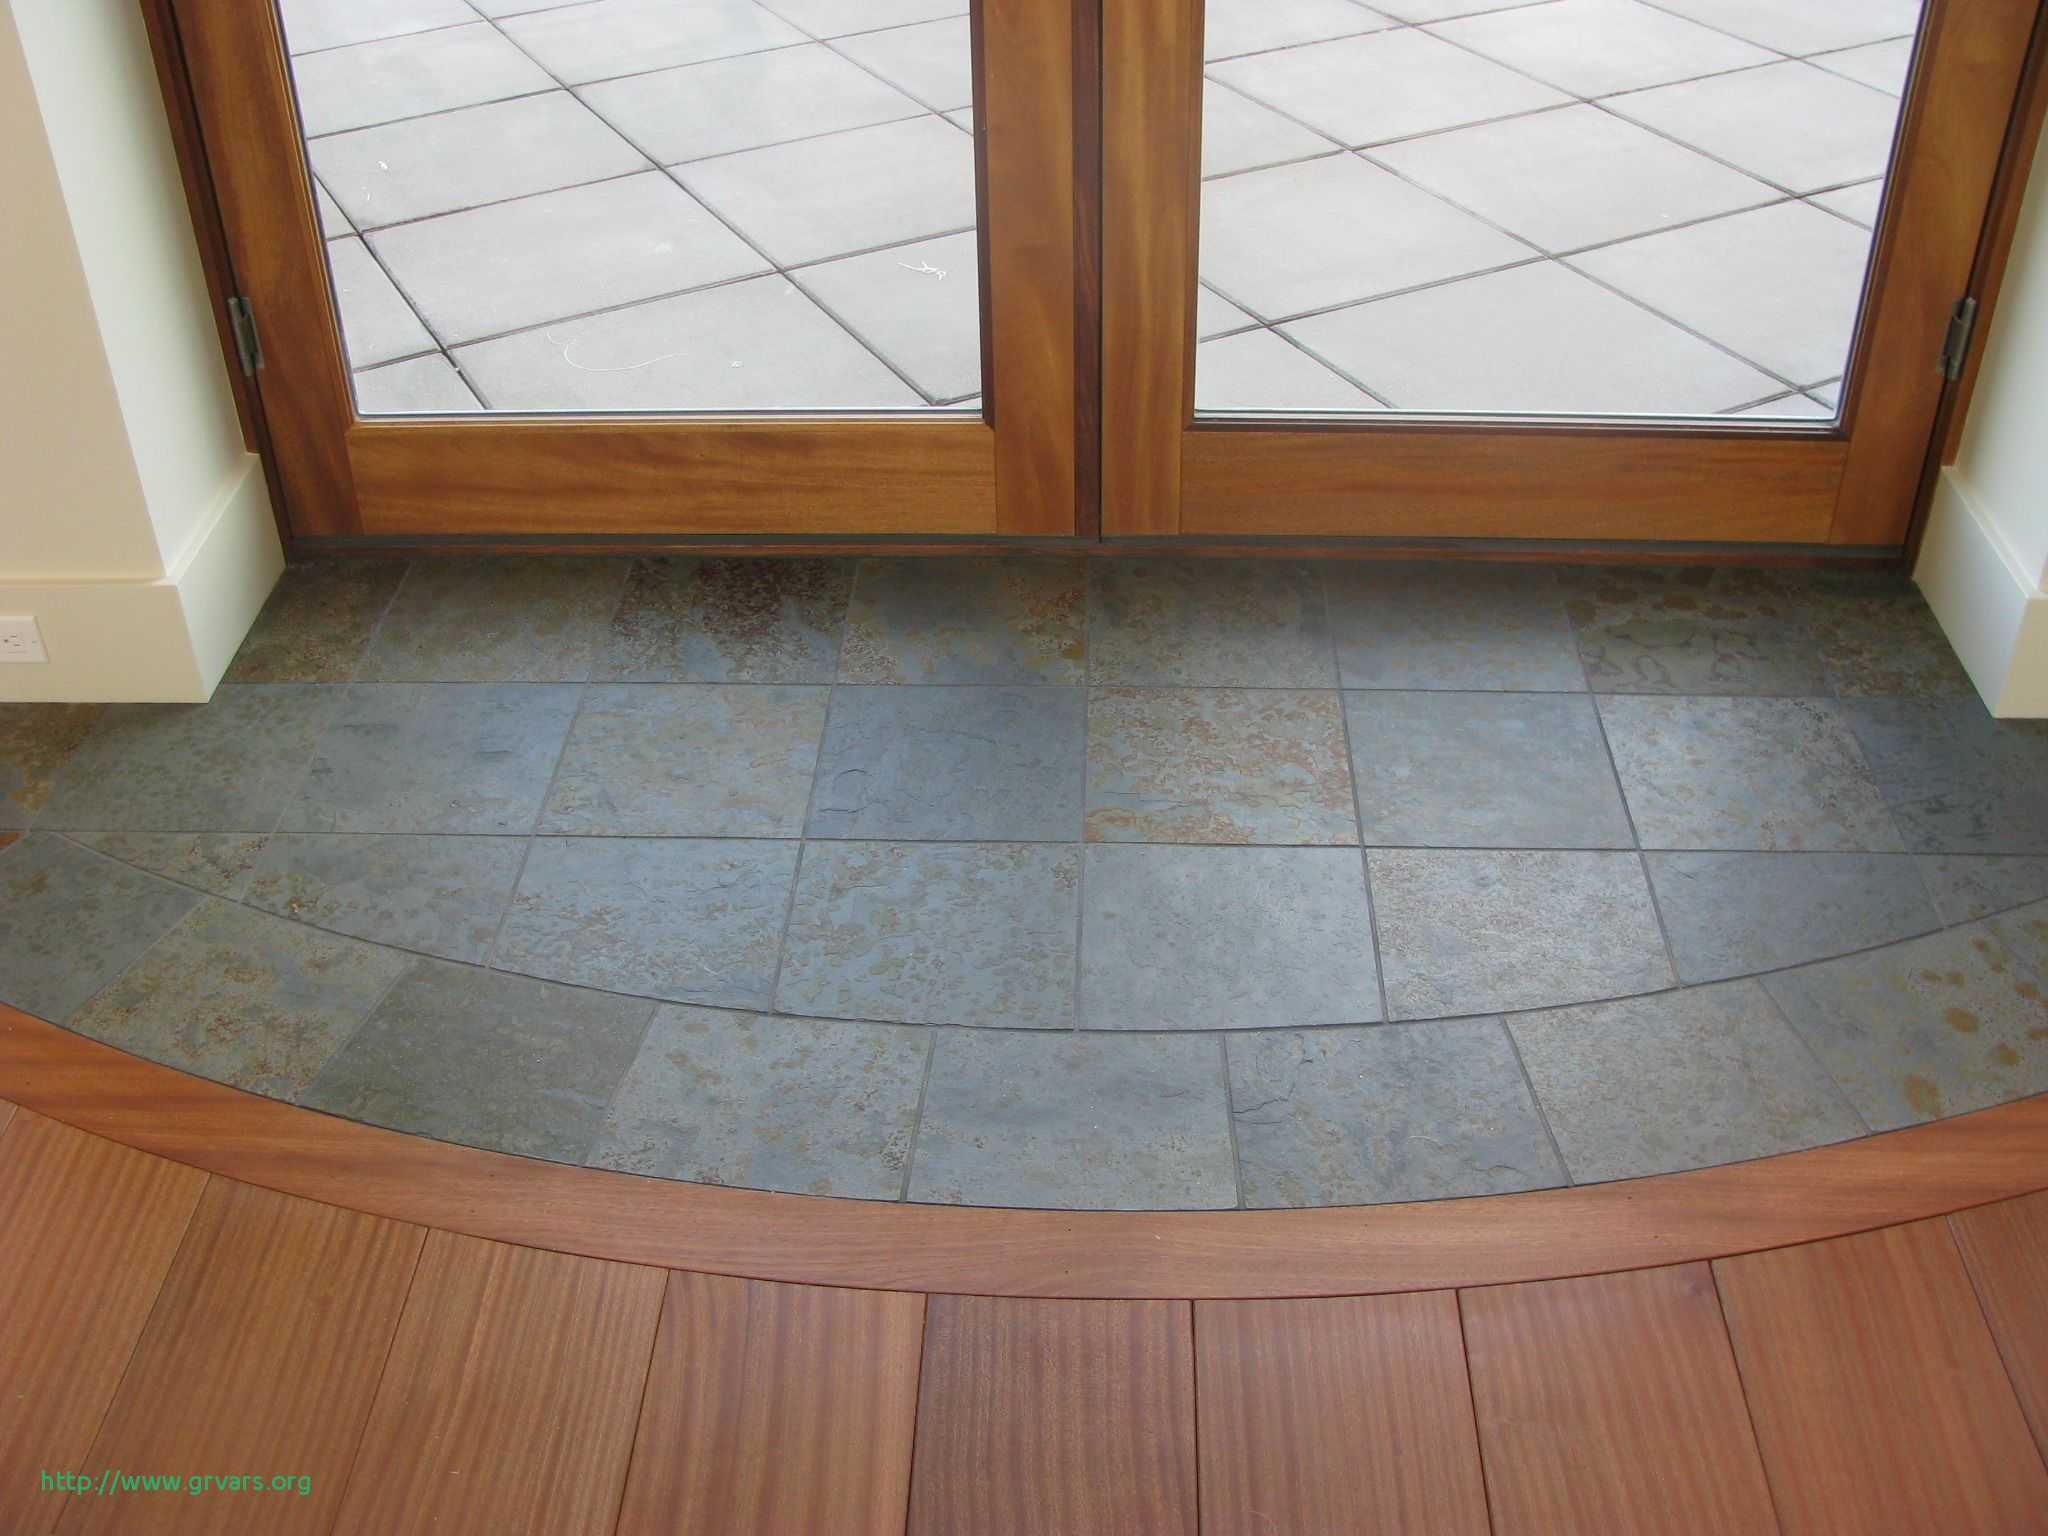 wax stick for hardwood floors of 17 unique polishing hardwood floors naturally ideas blog regarding polishing hardwood floors naturally beau slate entryway to protect hardwood floors at french door for when